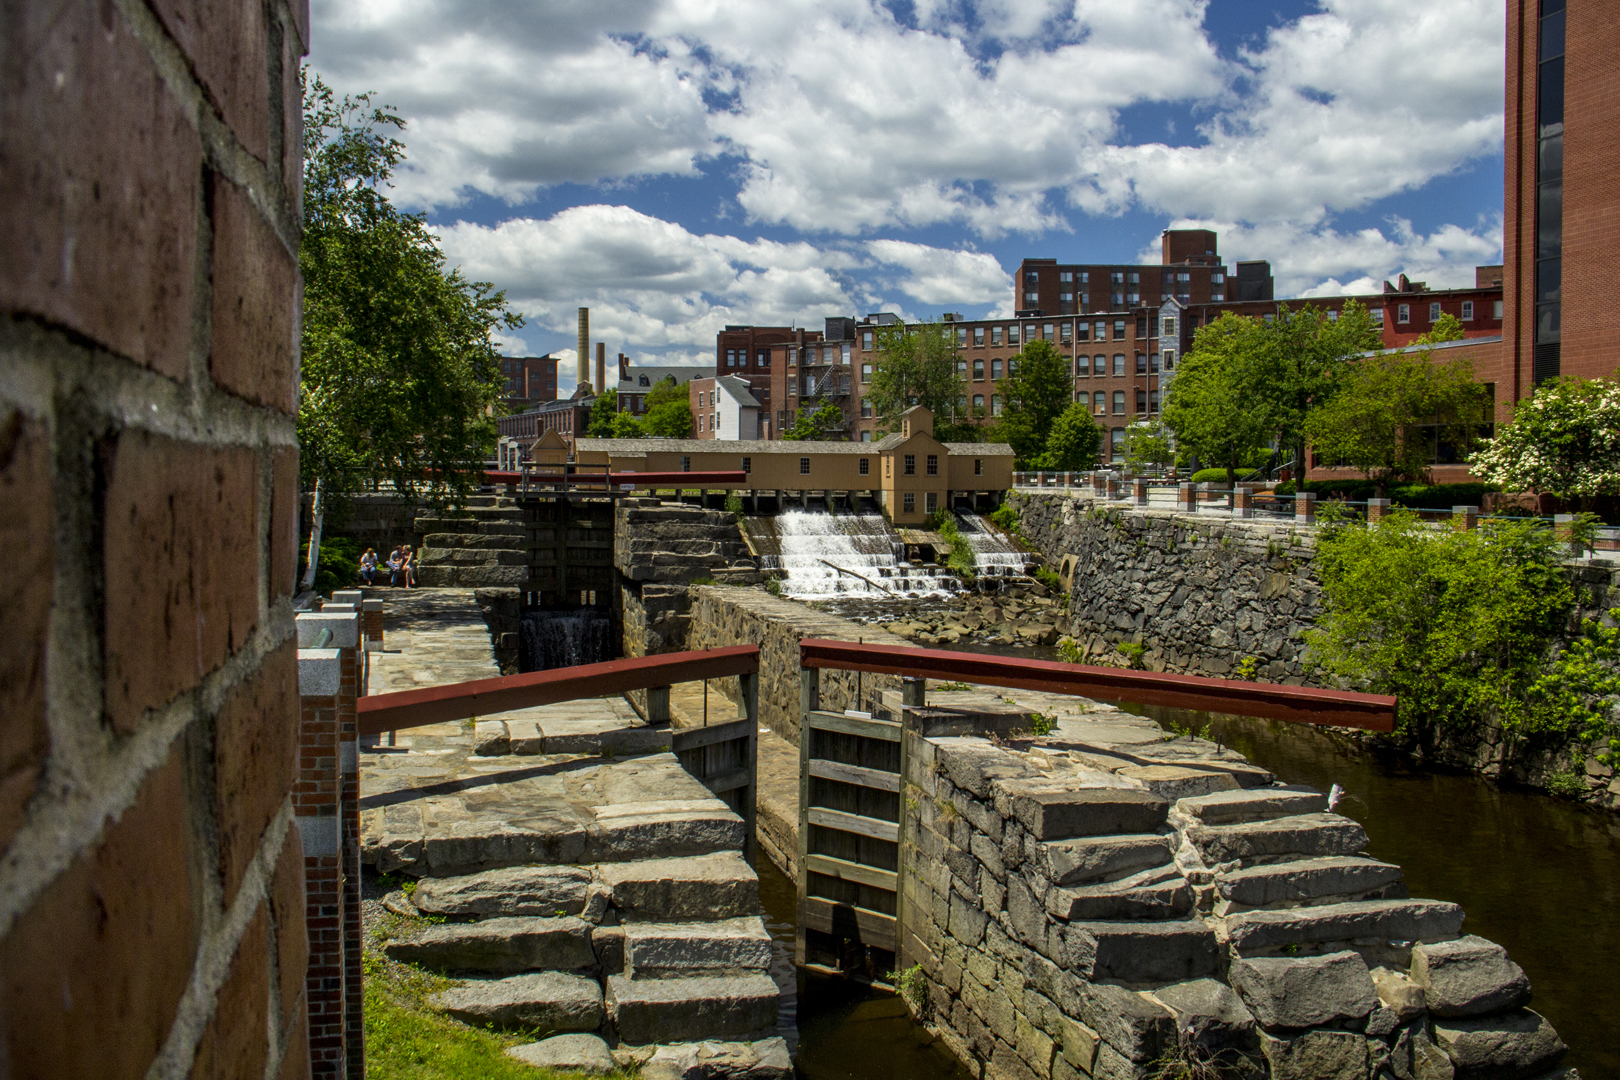 LowellMillCity_032